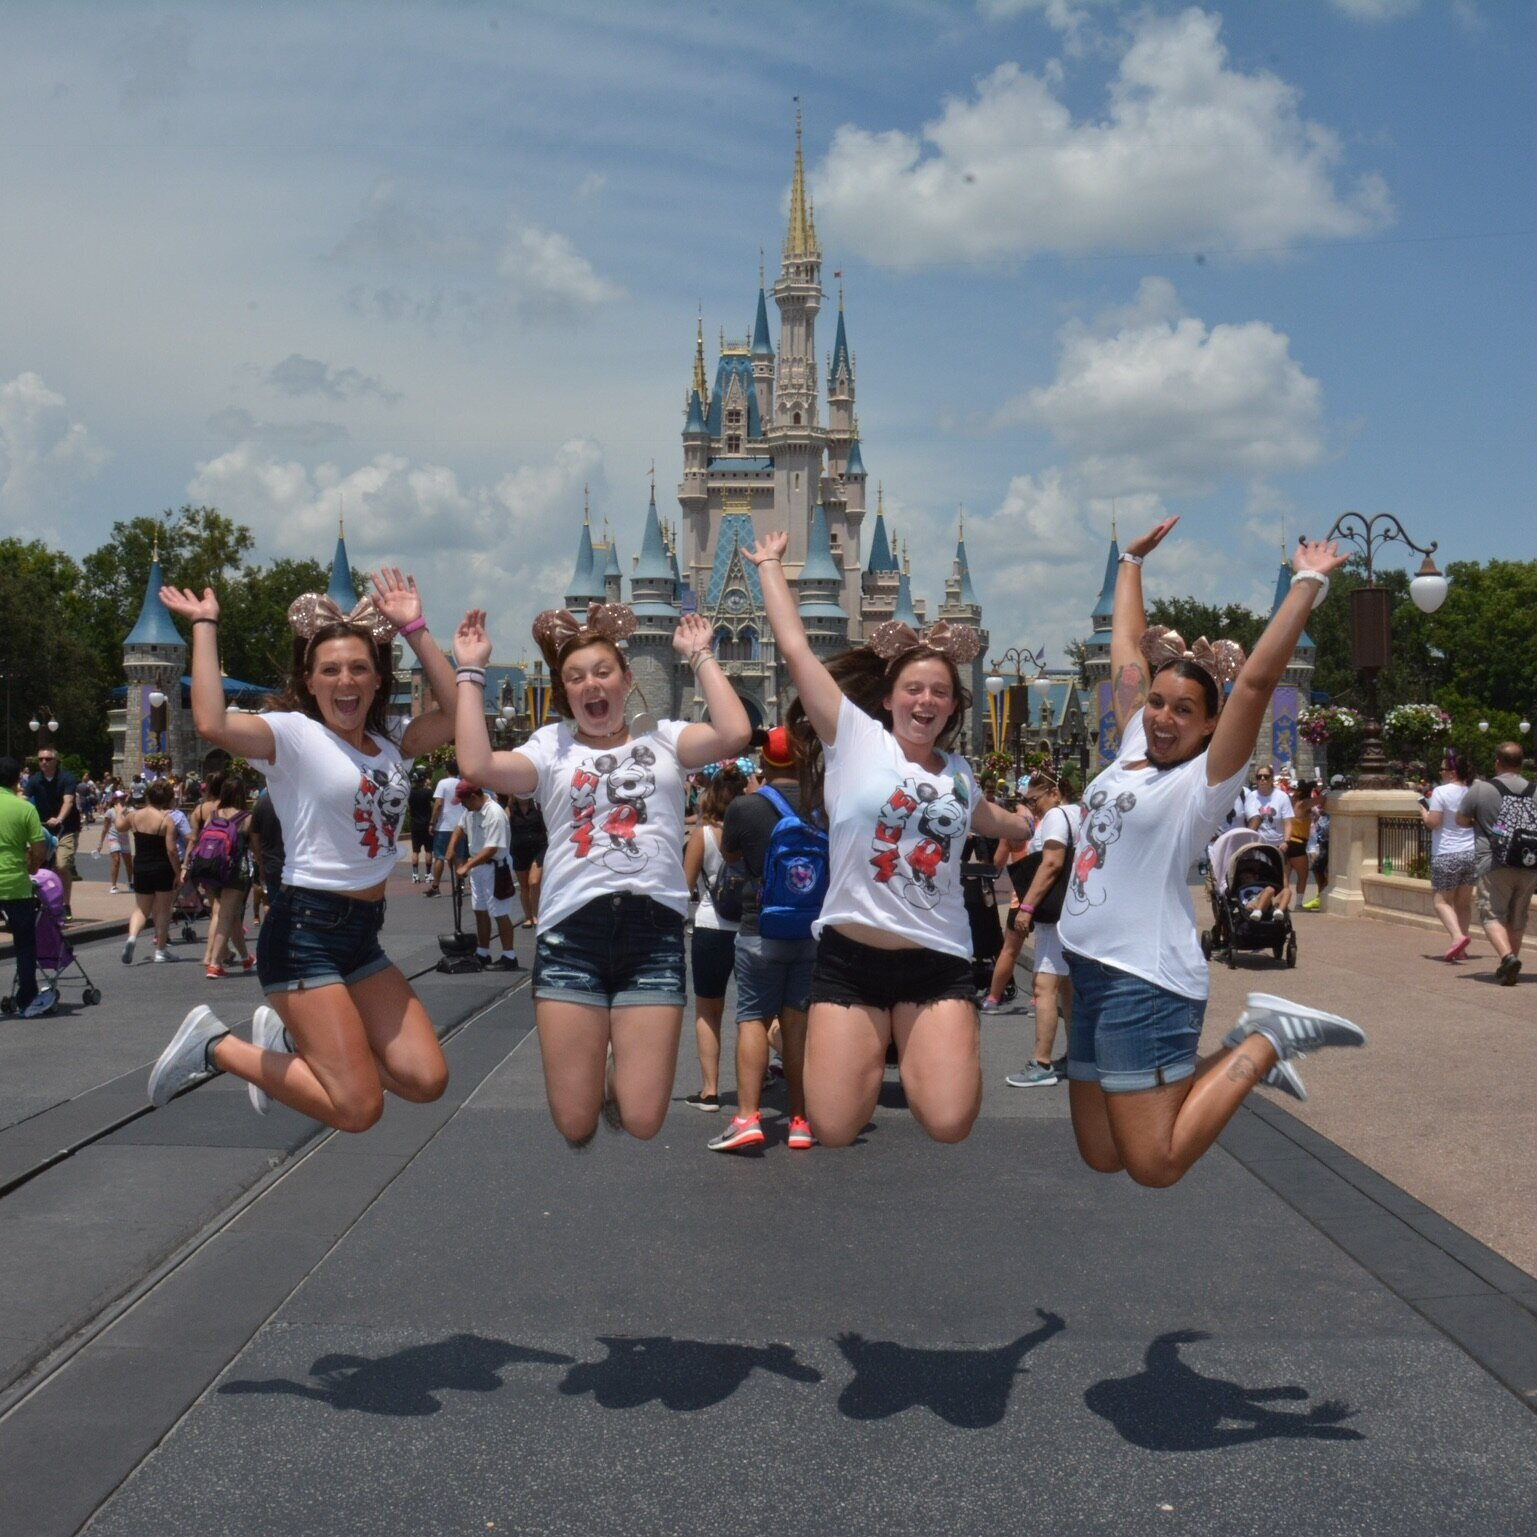 Jumping for joy in front of Cinderella Castle! (Disney's PhotoPass)